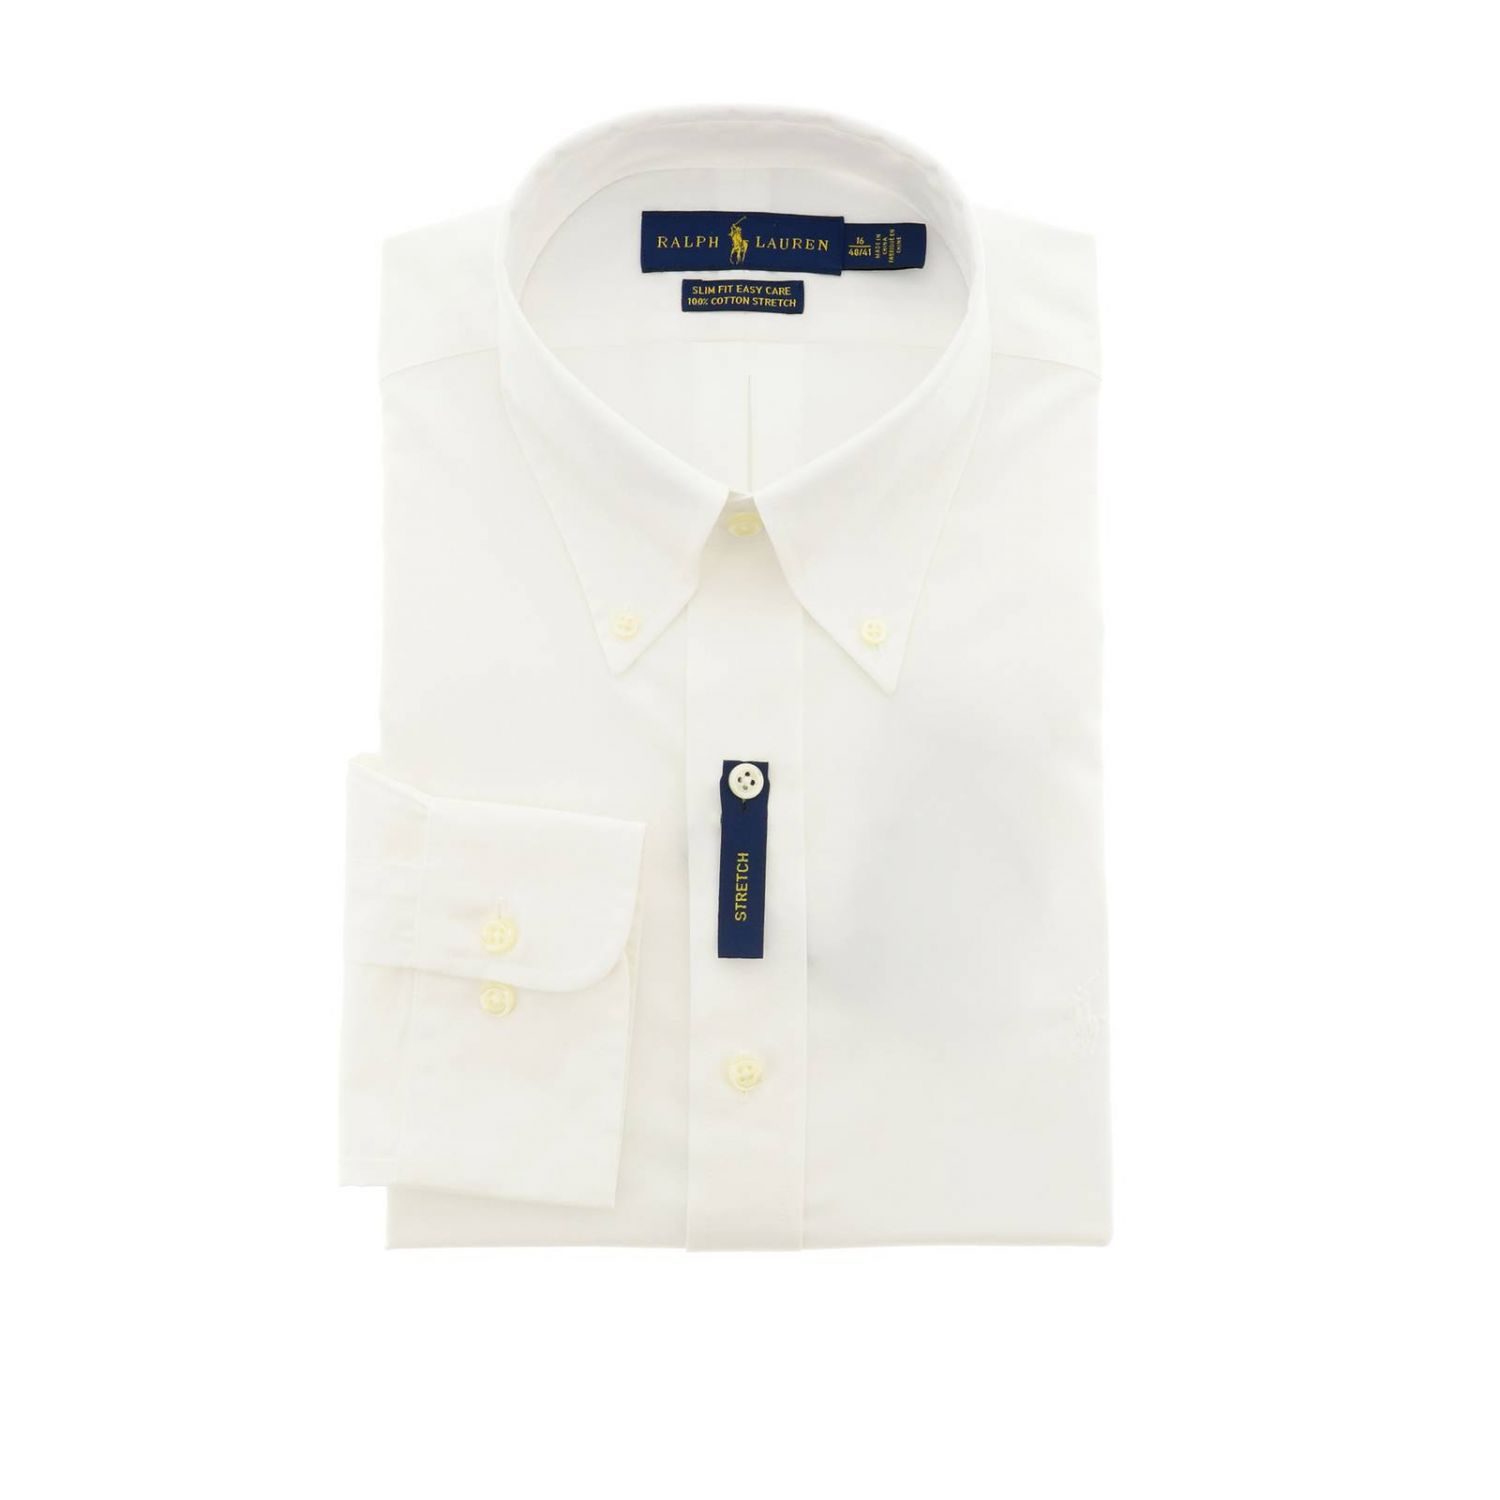 Easy care slim fit shirt with button down collar and Polo Ralph Lauren logo white 1